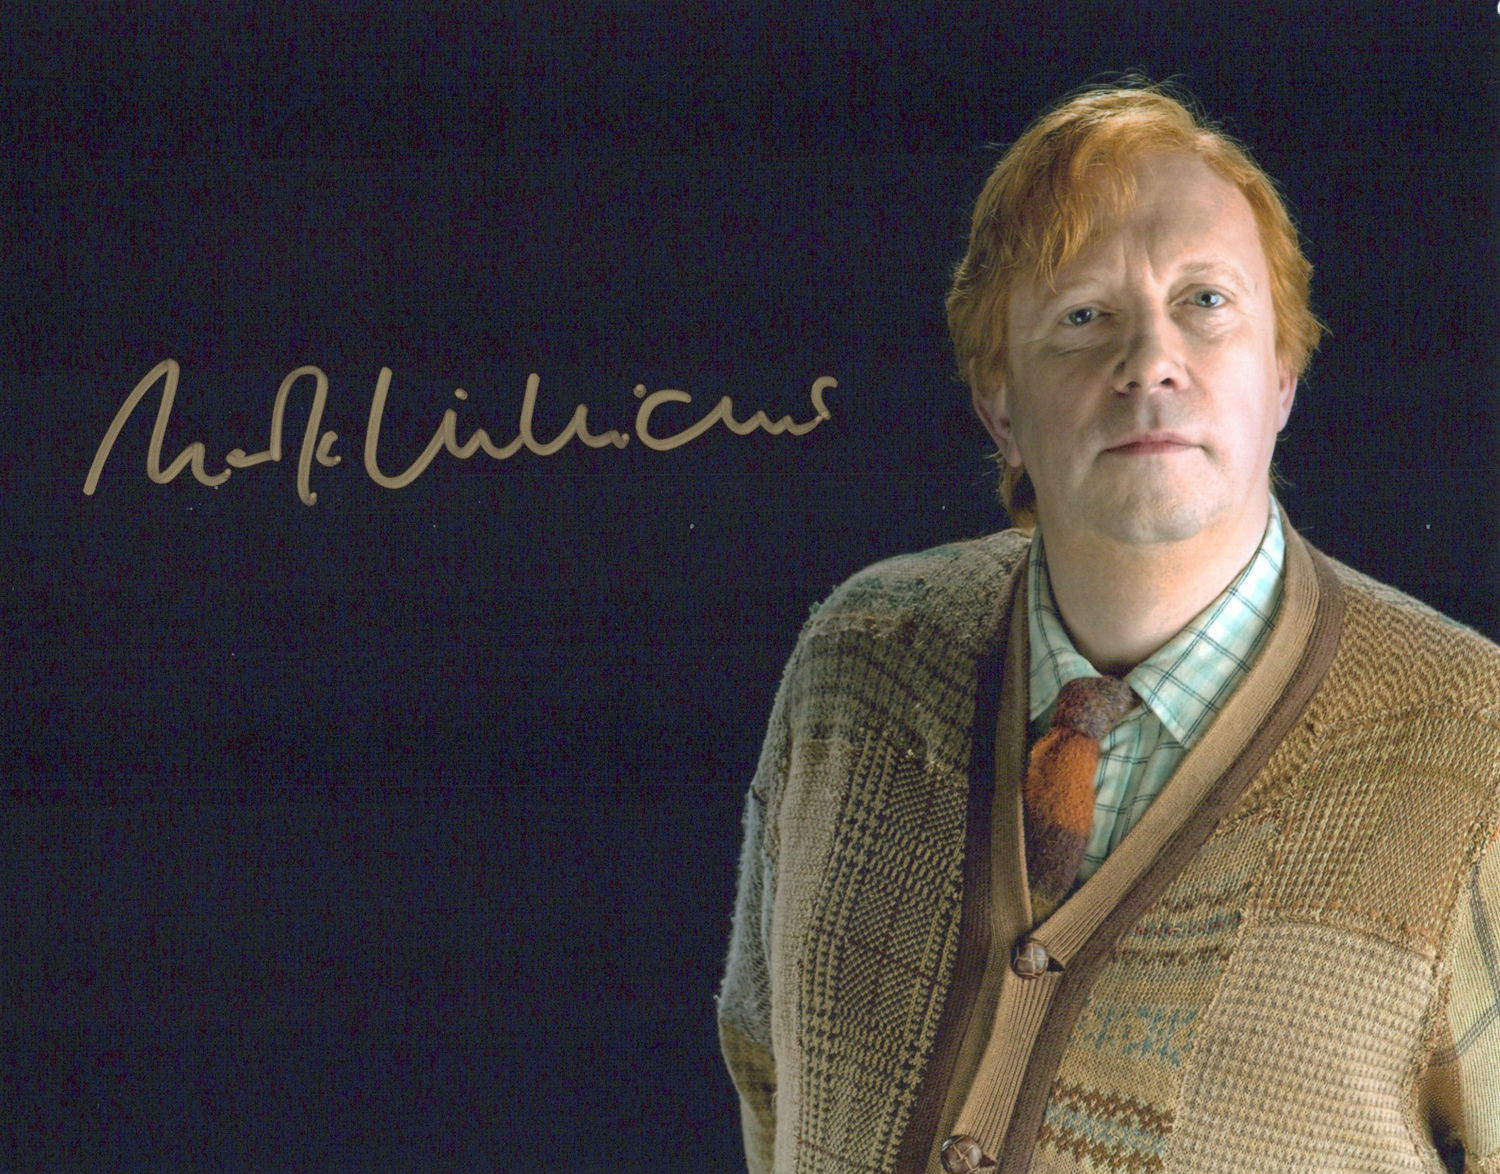 Mark Williams Original Autogramm auf Foto 20x25cm - Harry Potter